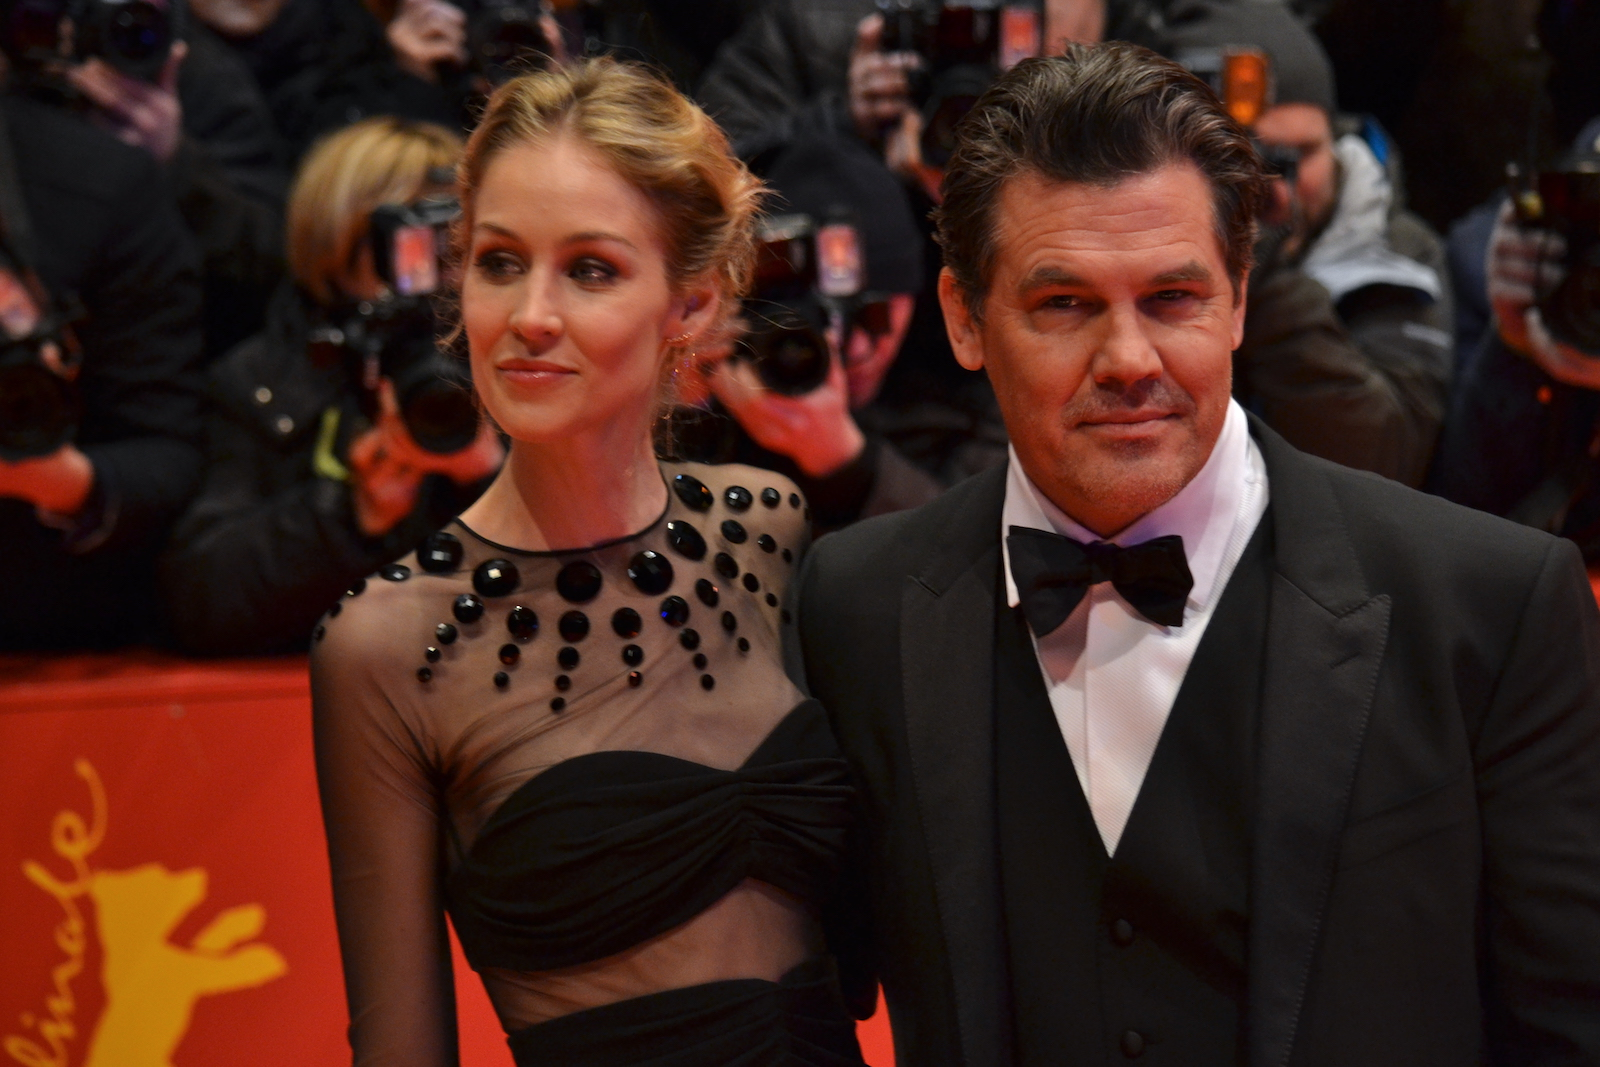 Berlino 2016: Josh Brolin sul red carpet di Ave, Cesare!